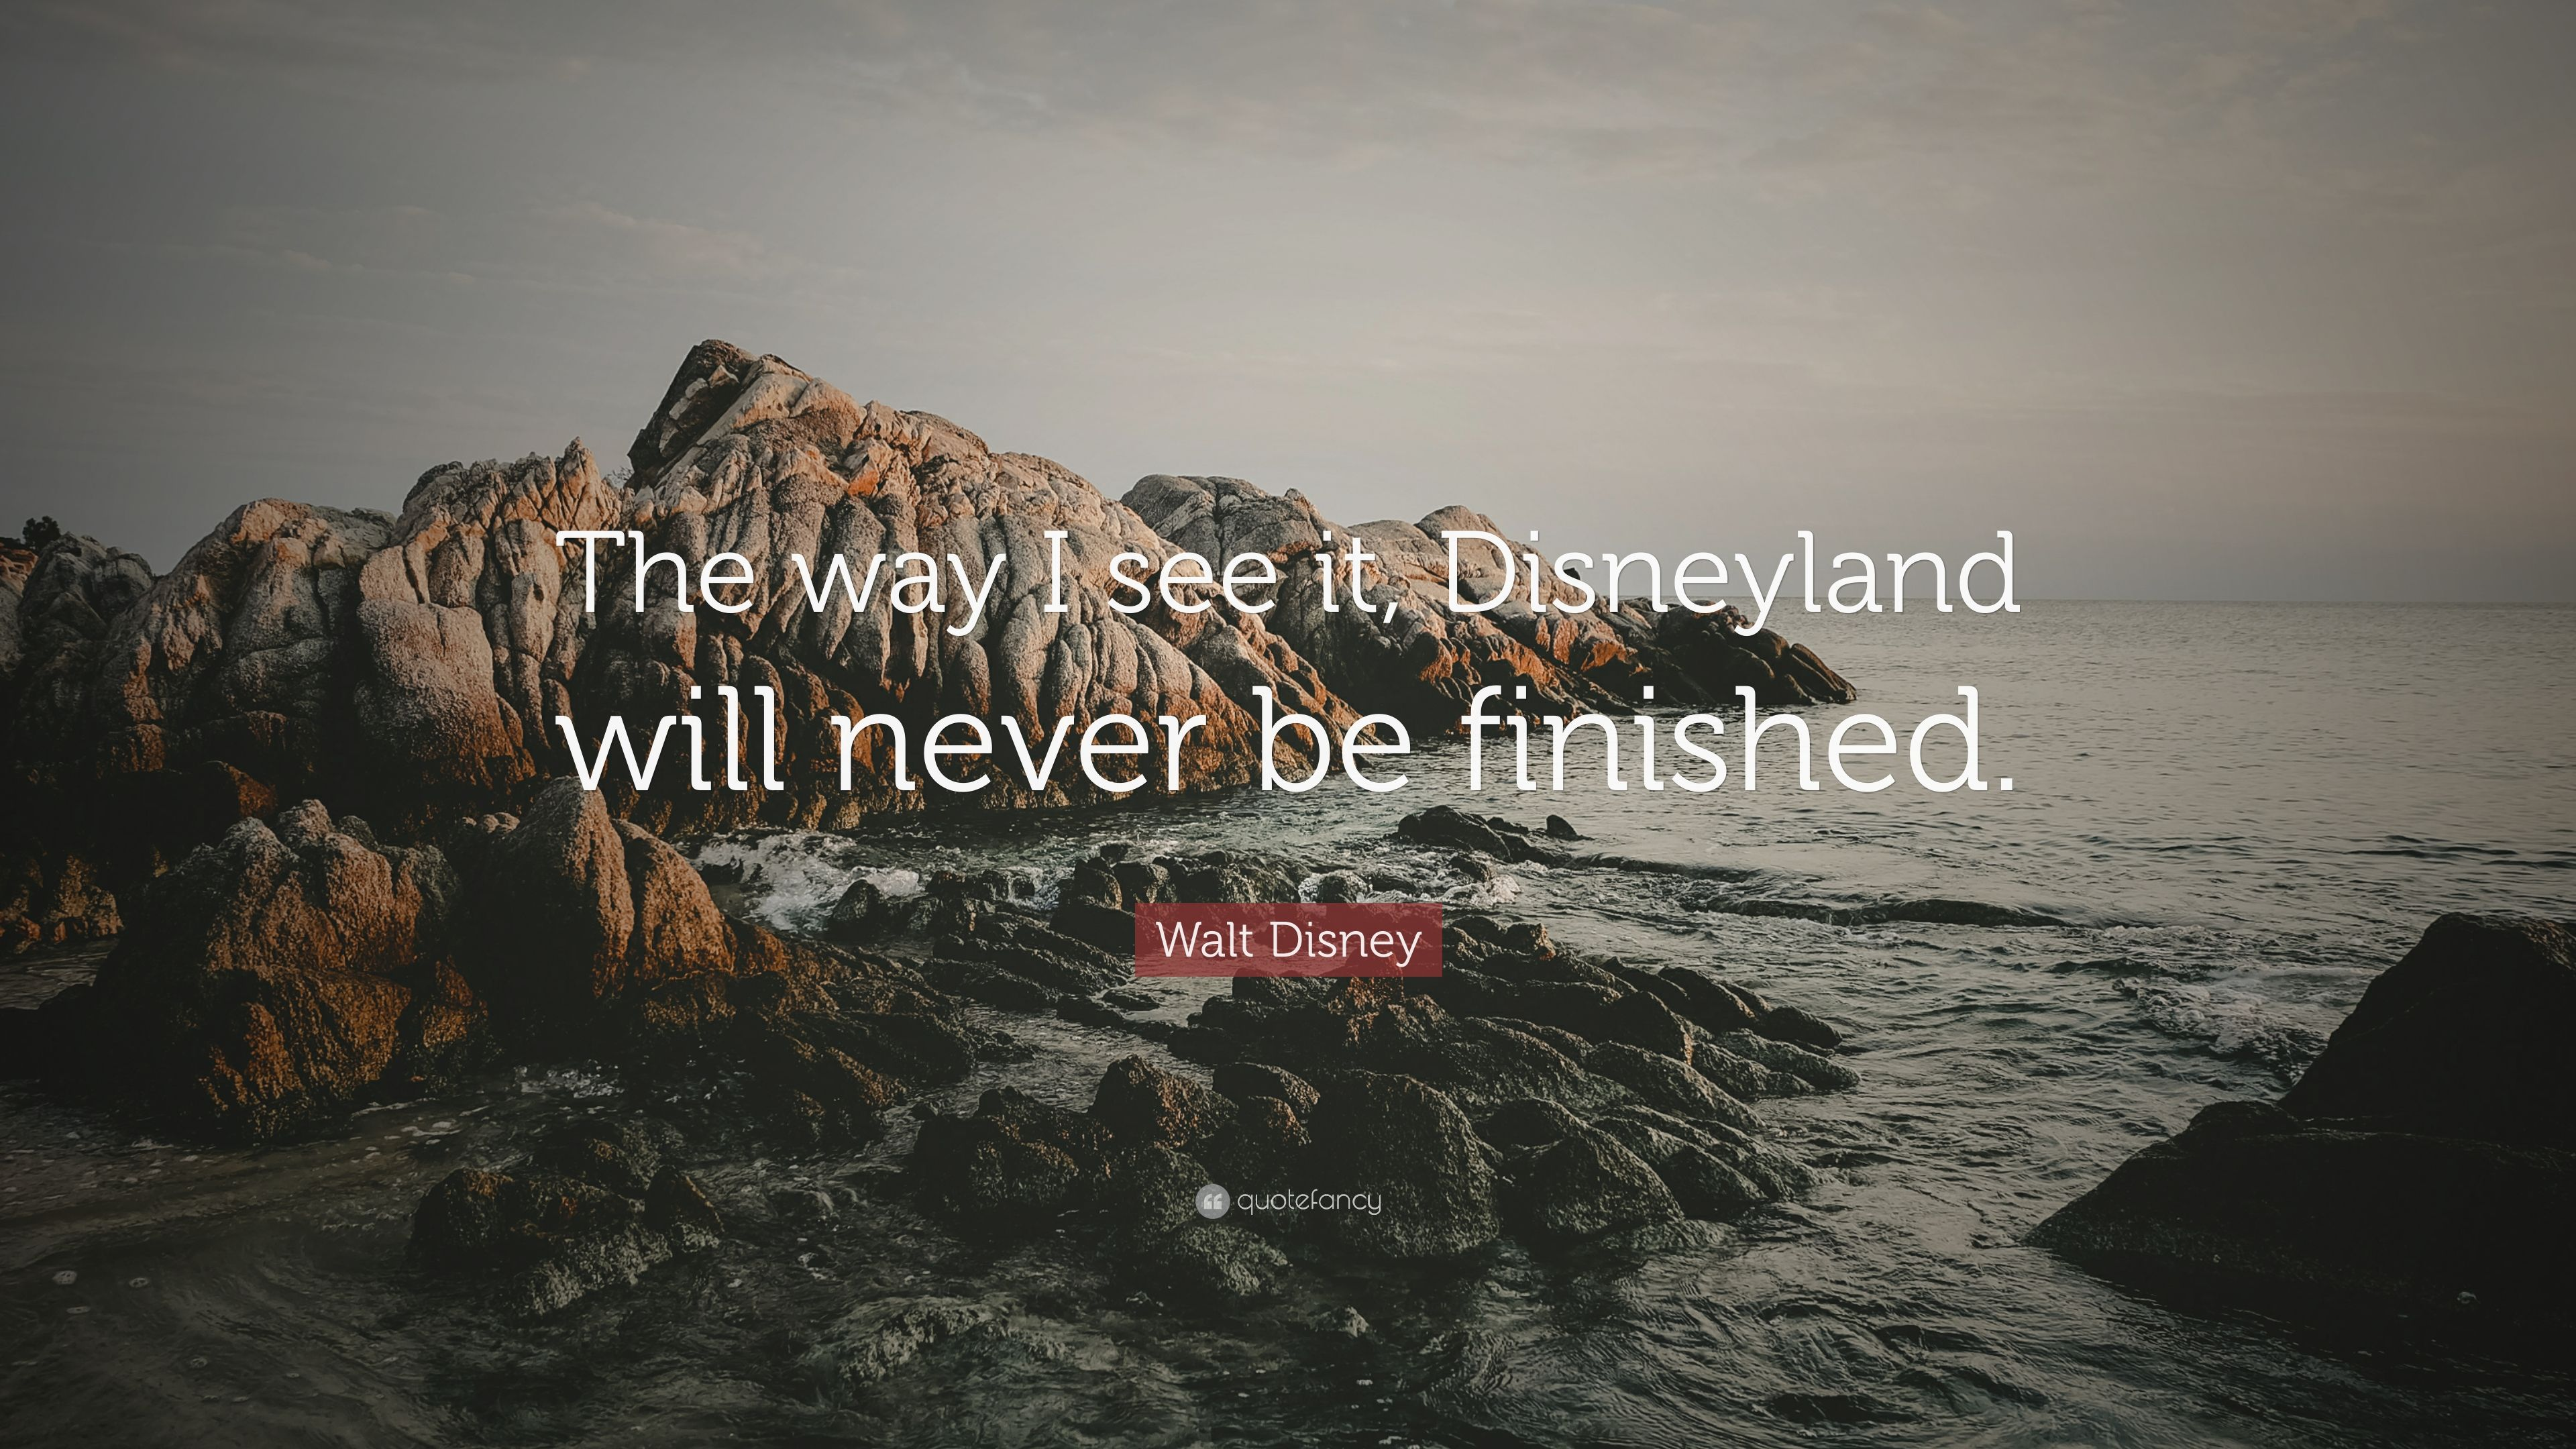 walt disney quote the way i see it disneyland will never be finished